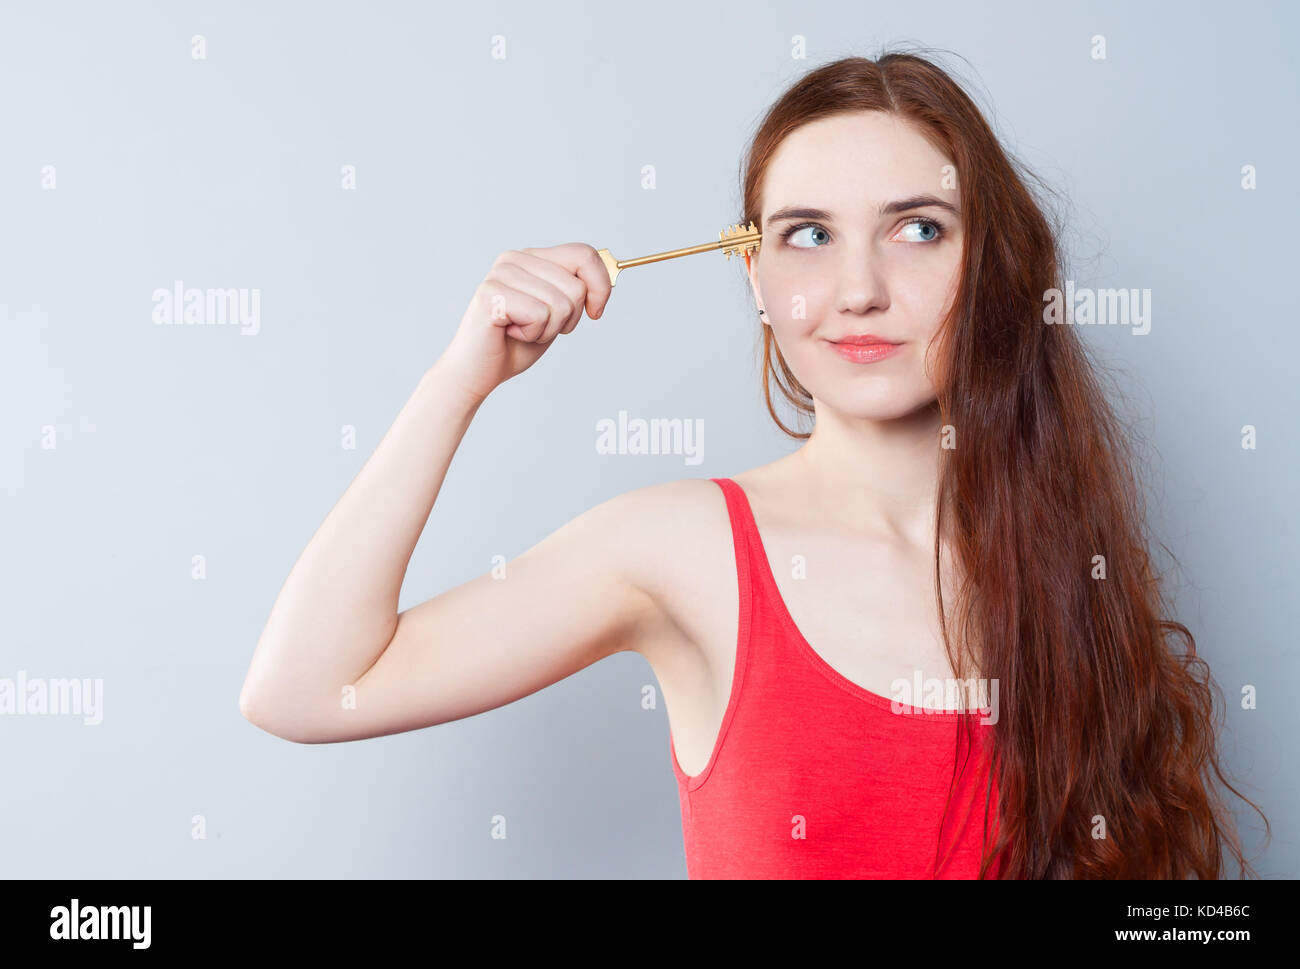 A young cute woman holds a big key next to her head, trying to open her mind or head. The concept of creativity, - Stock Image